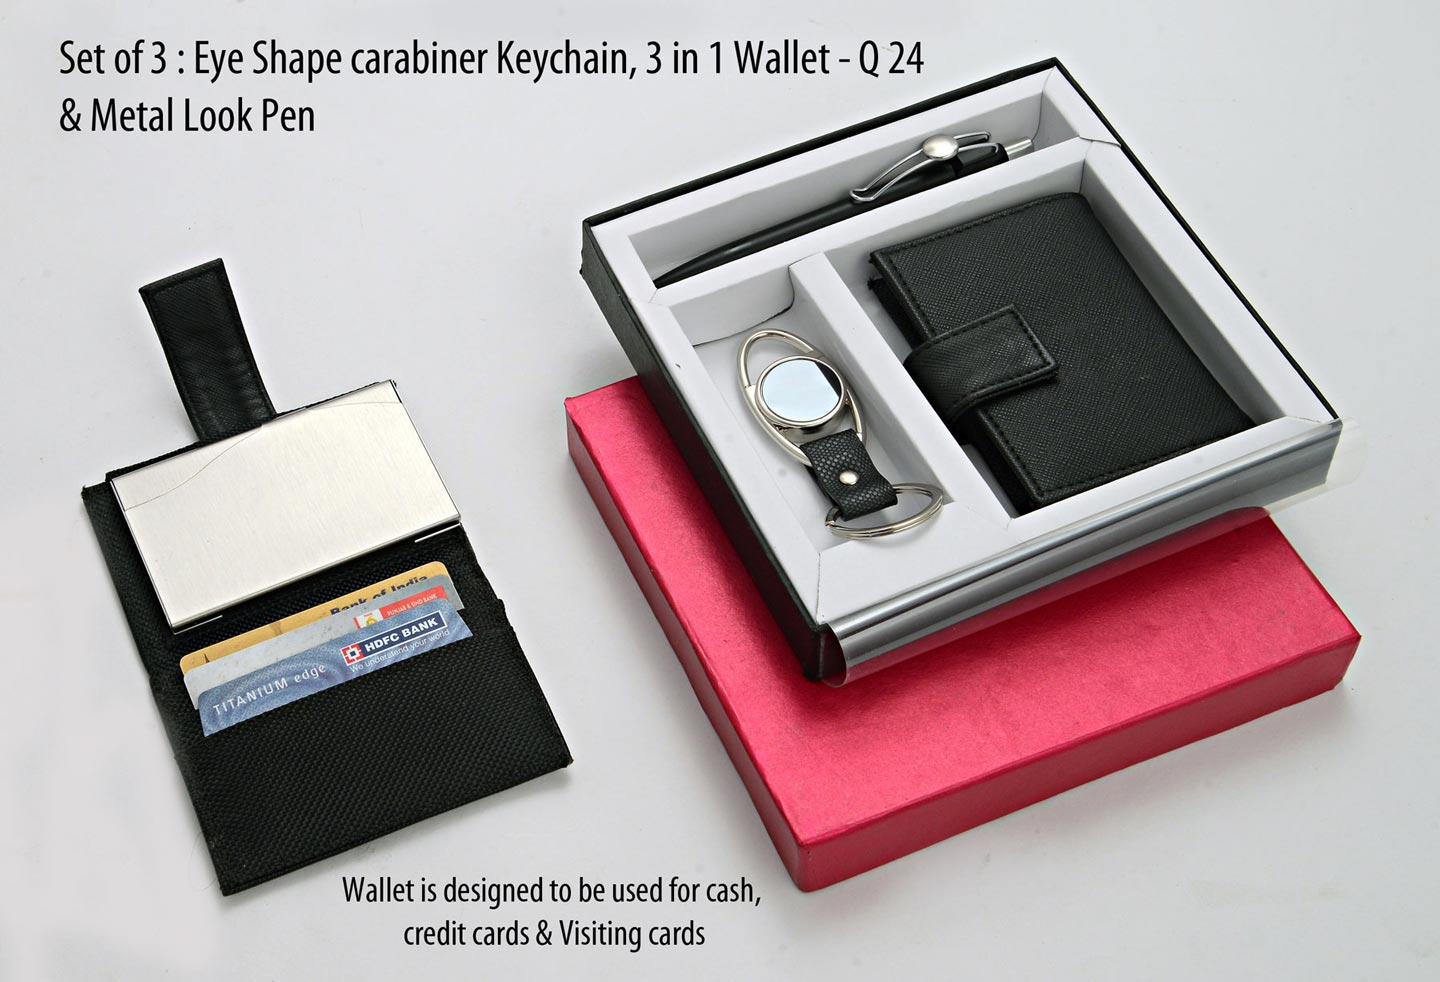 Q24 - Set of 3 : Eye shape carabiner Keychain, 3 in 1 wallet (For cash, cards and visiting cards) & Metal look Pen